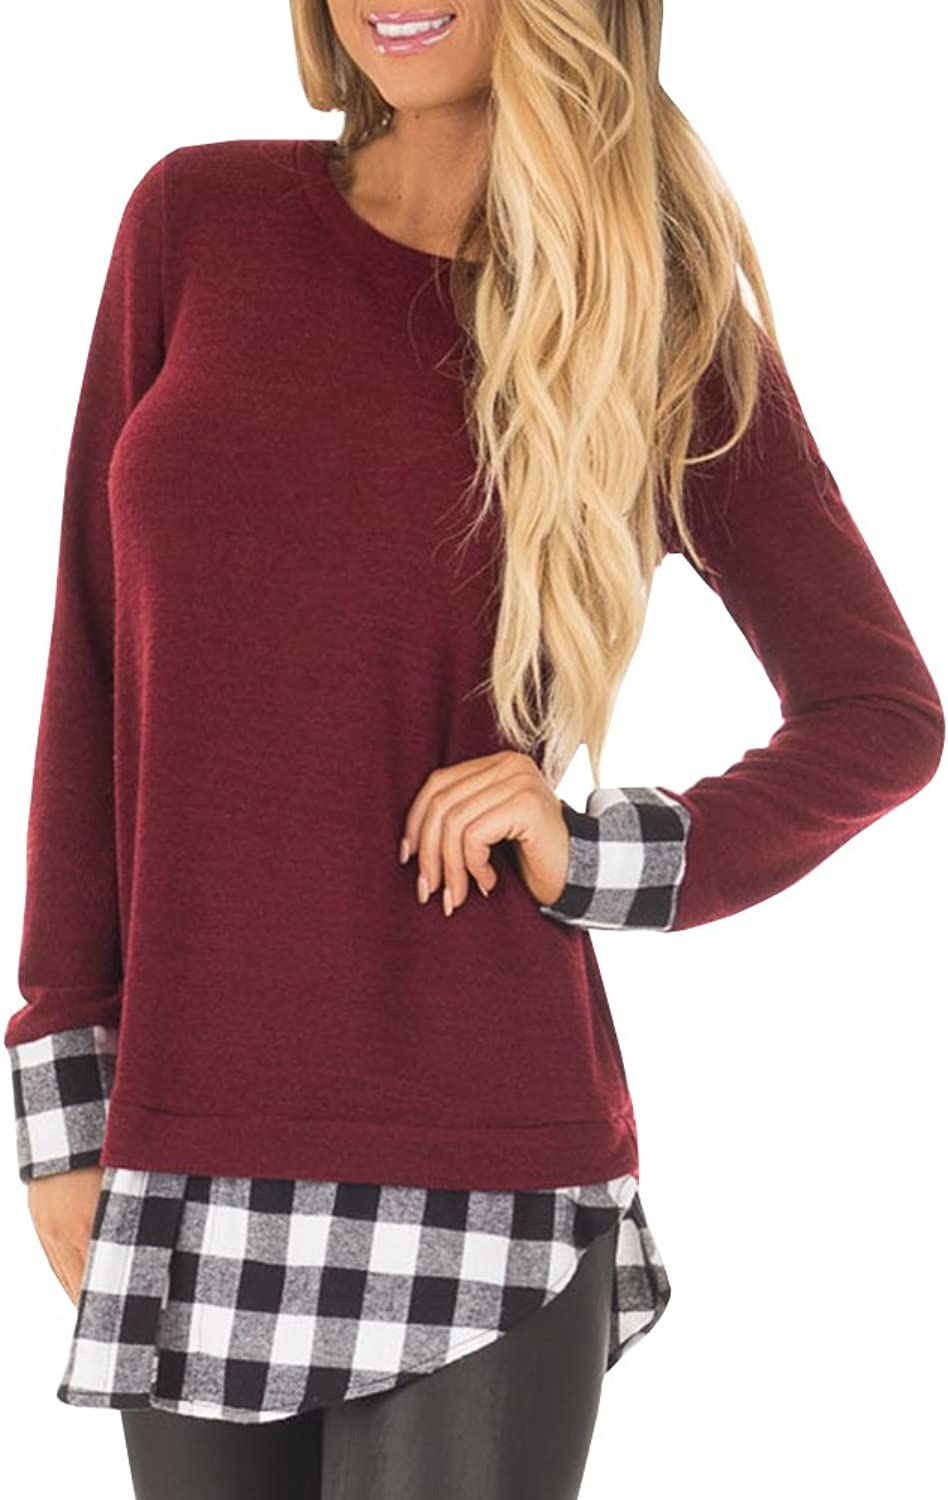 Saikesigirl Womens Tunic Top Plaid Hem Long Sleeve Casual Fall Crewneck Sweatshirt